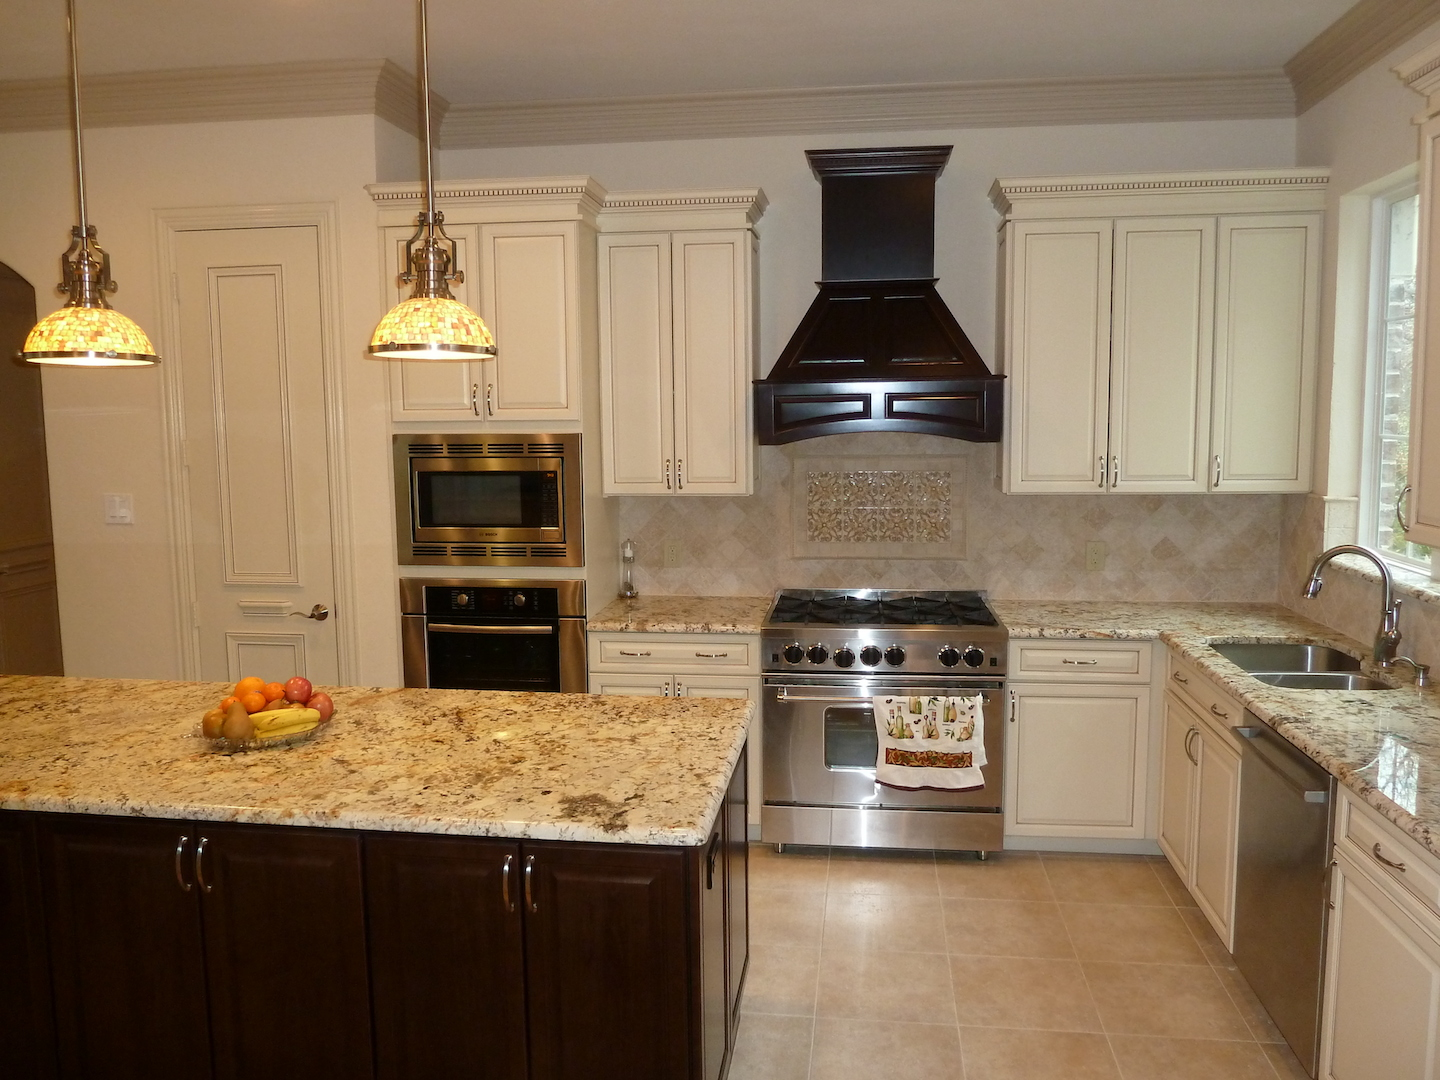 Kitchen redesign and remodeling in flower mound tx Kitchen design for village